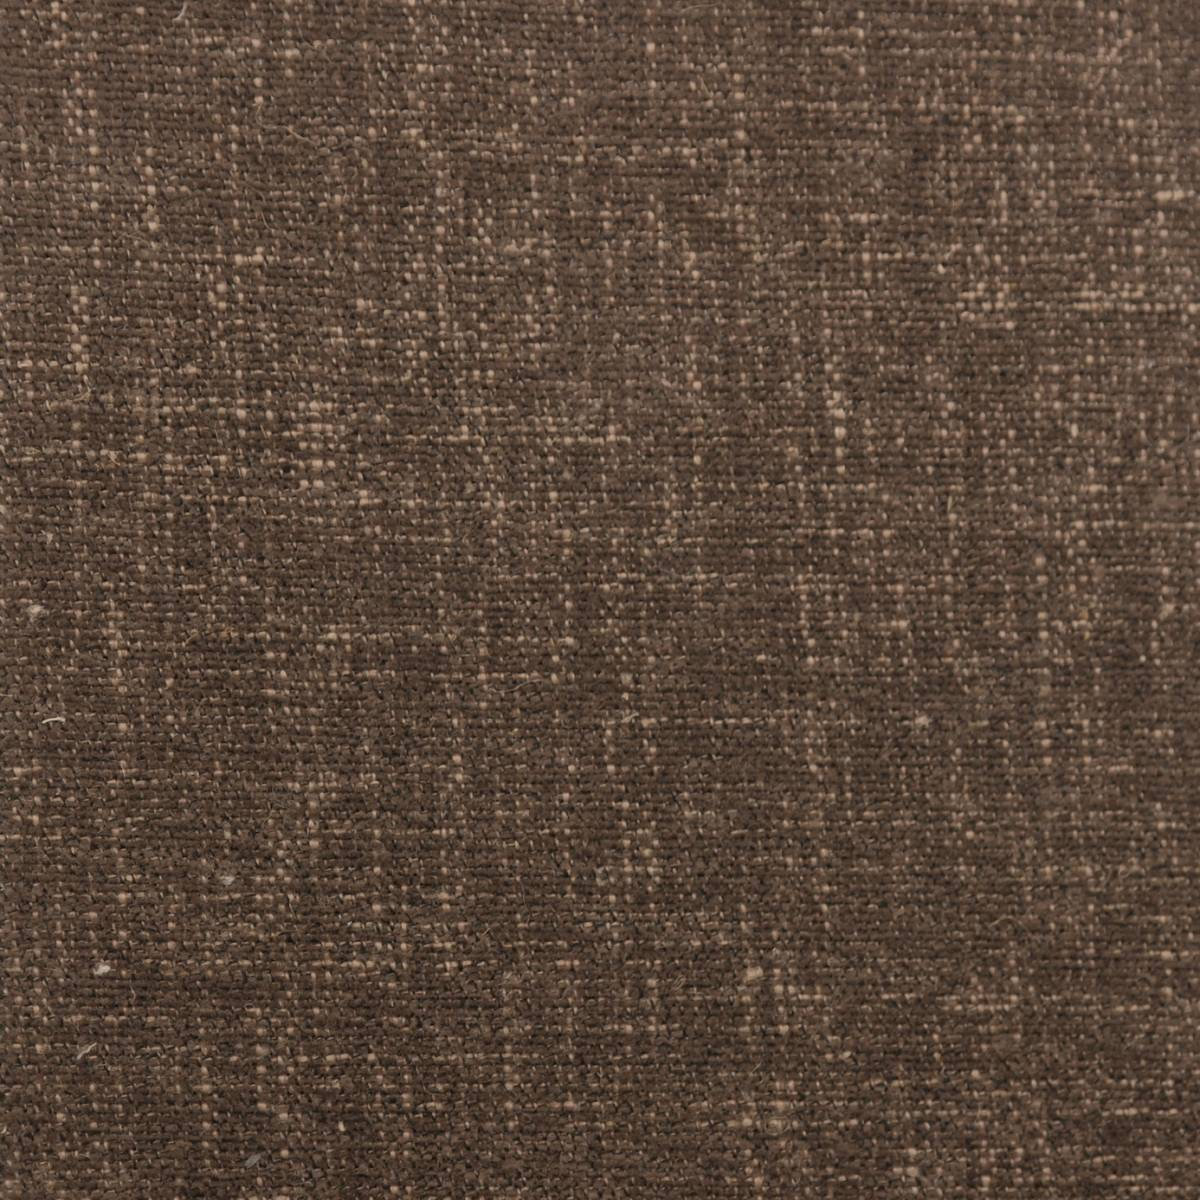 Fabric Blinds Texture